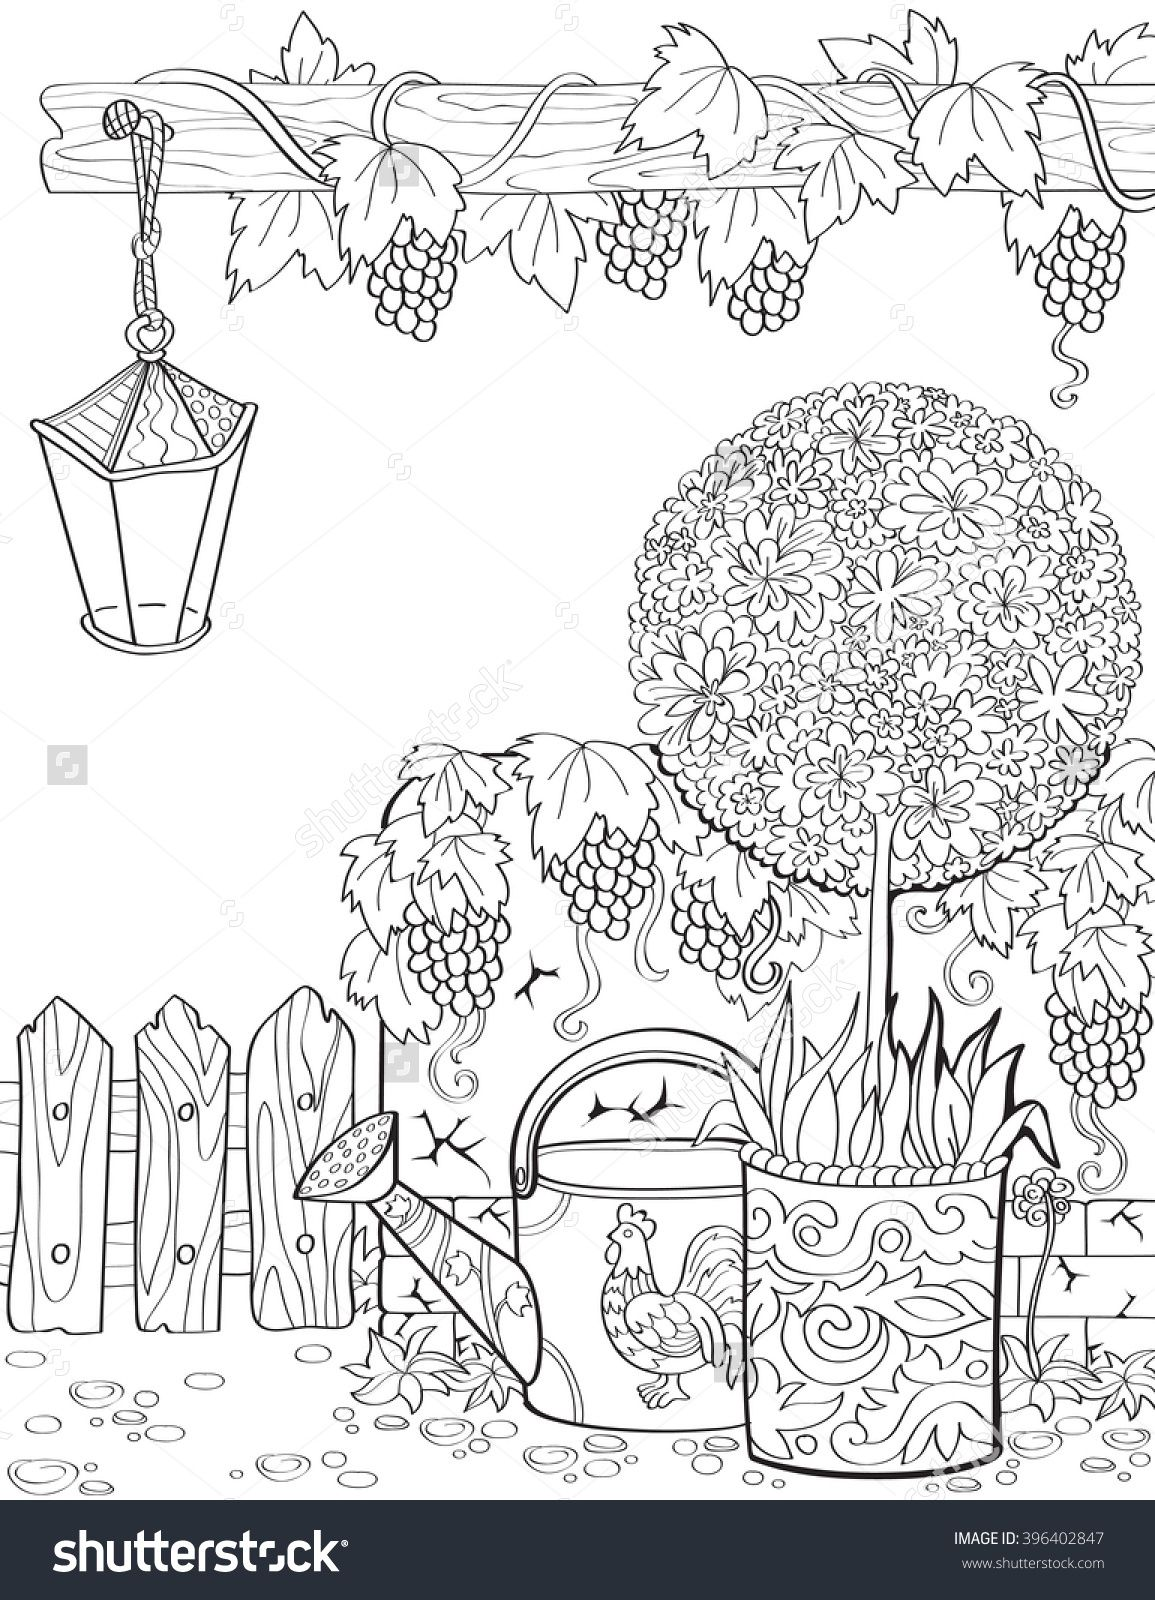 Gardening Time Coloring Page By Celia